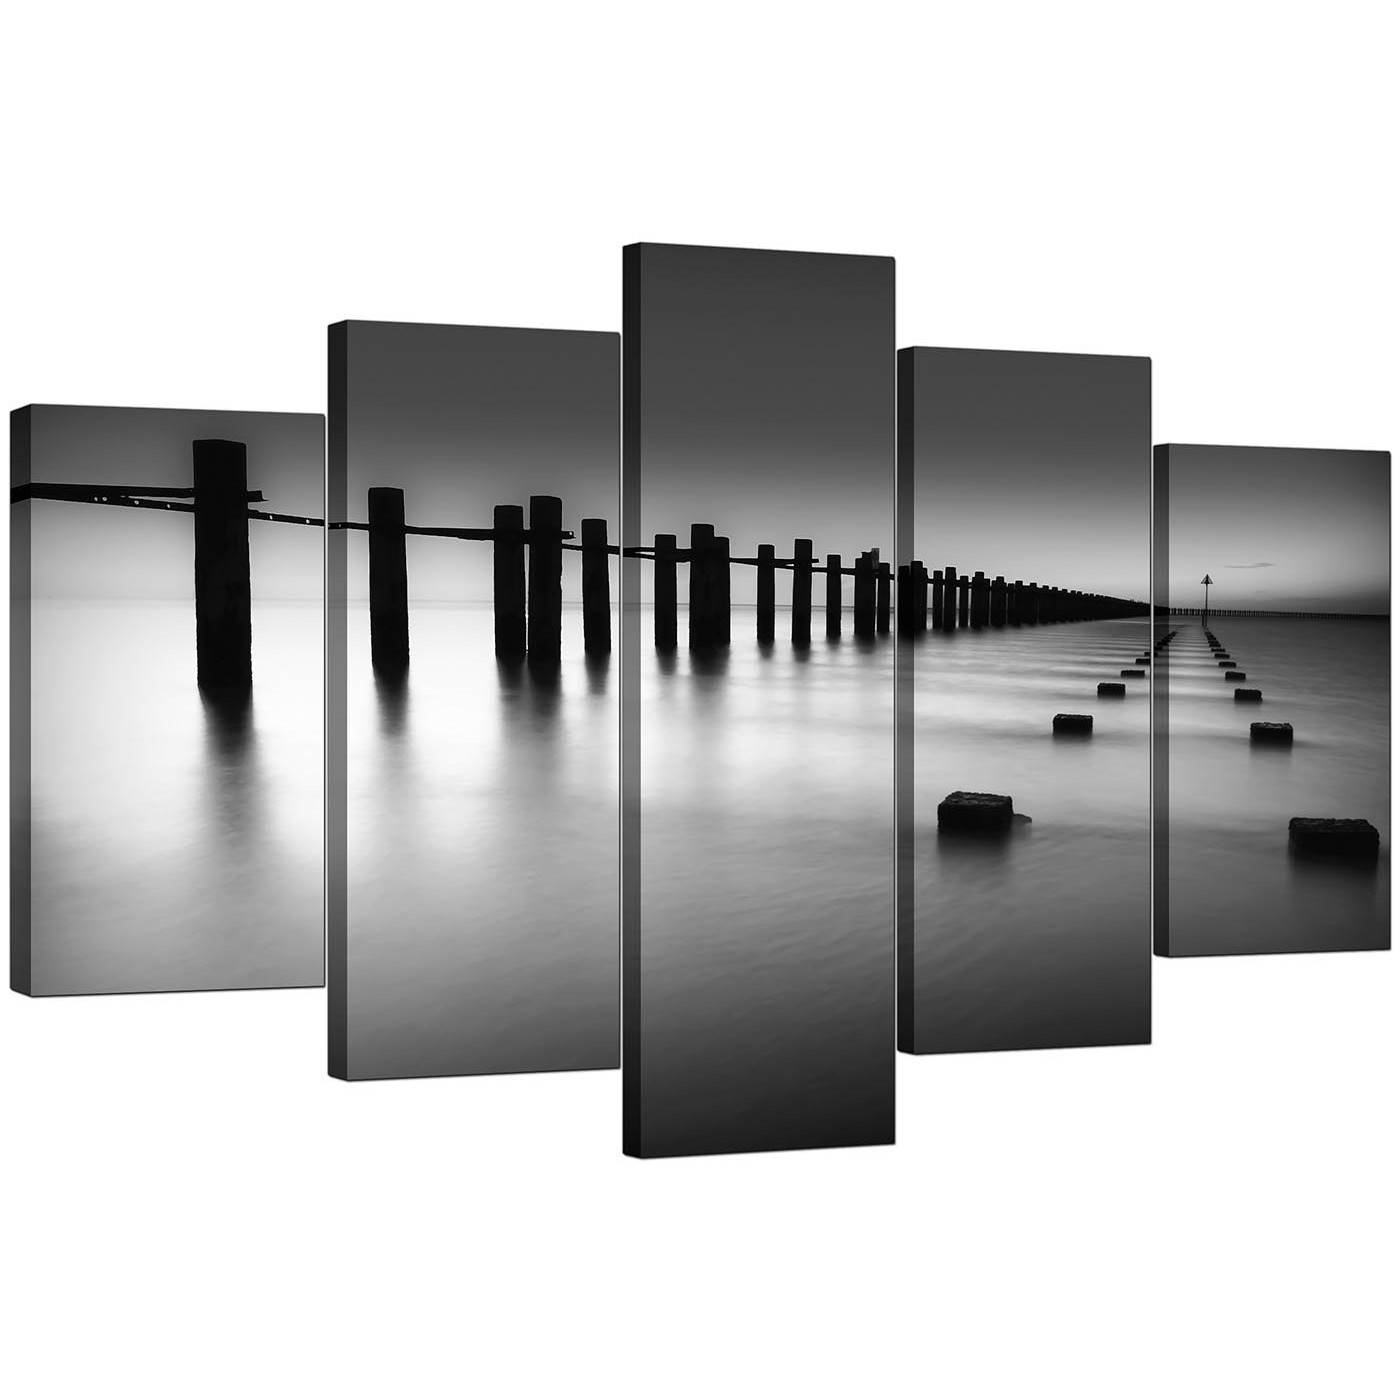 Extra Large Sea Canvas Prints 5 Piece In Black & White Intended For 2018 Large Black And White Wall Art (Gallery 15 of 20)